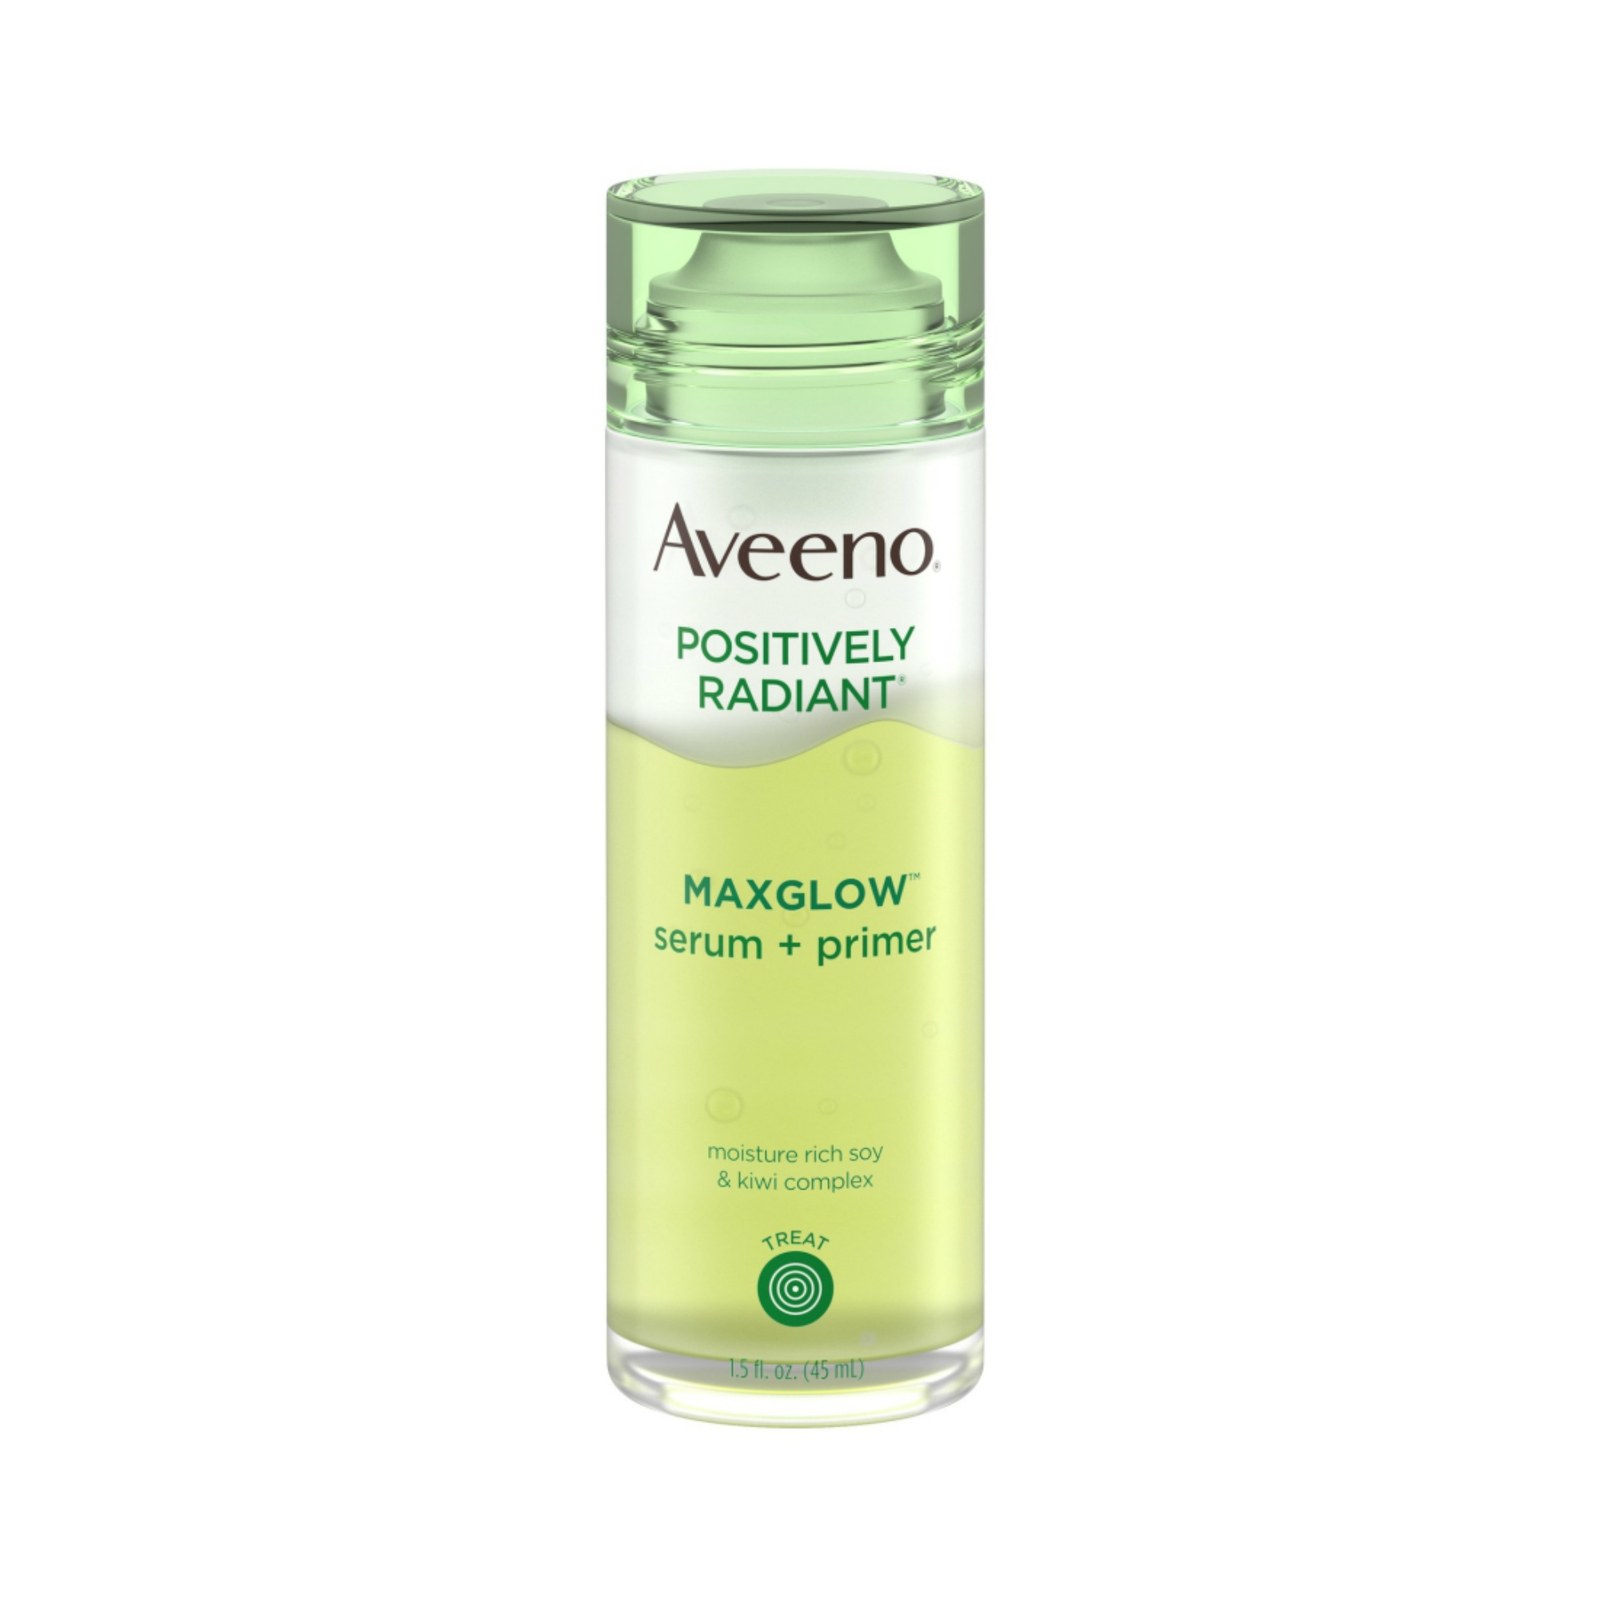 Best serum for every skin Type of 2019 Light green bottle Aveeno Maxglow Serum and Primer on white background